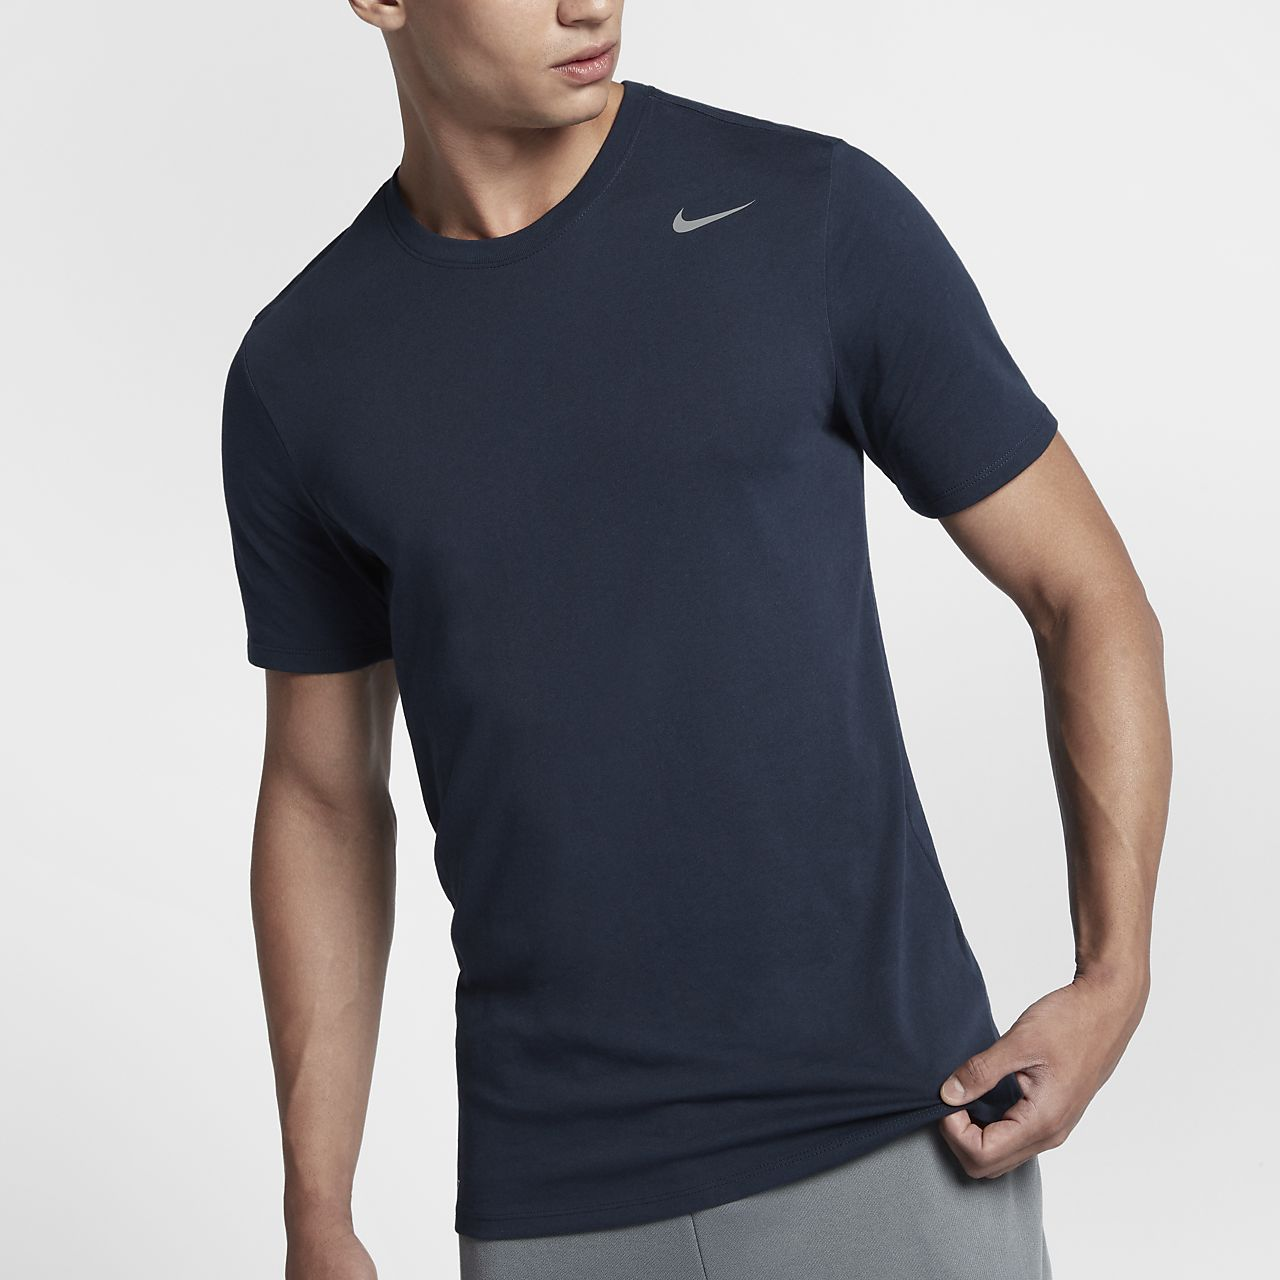 ... Nike Dri-FIT Men's Training Short-Sleeve T-Shirt